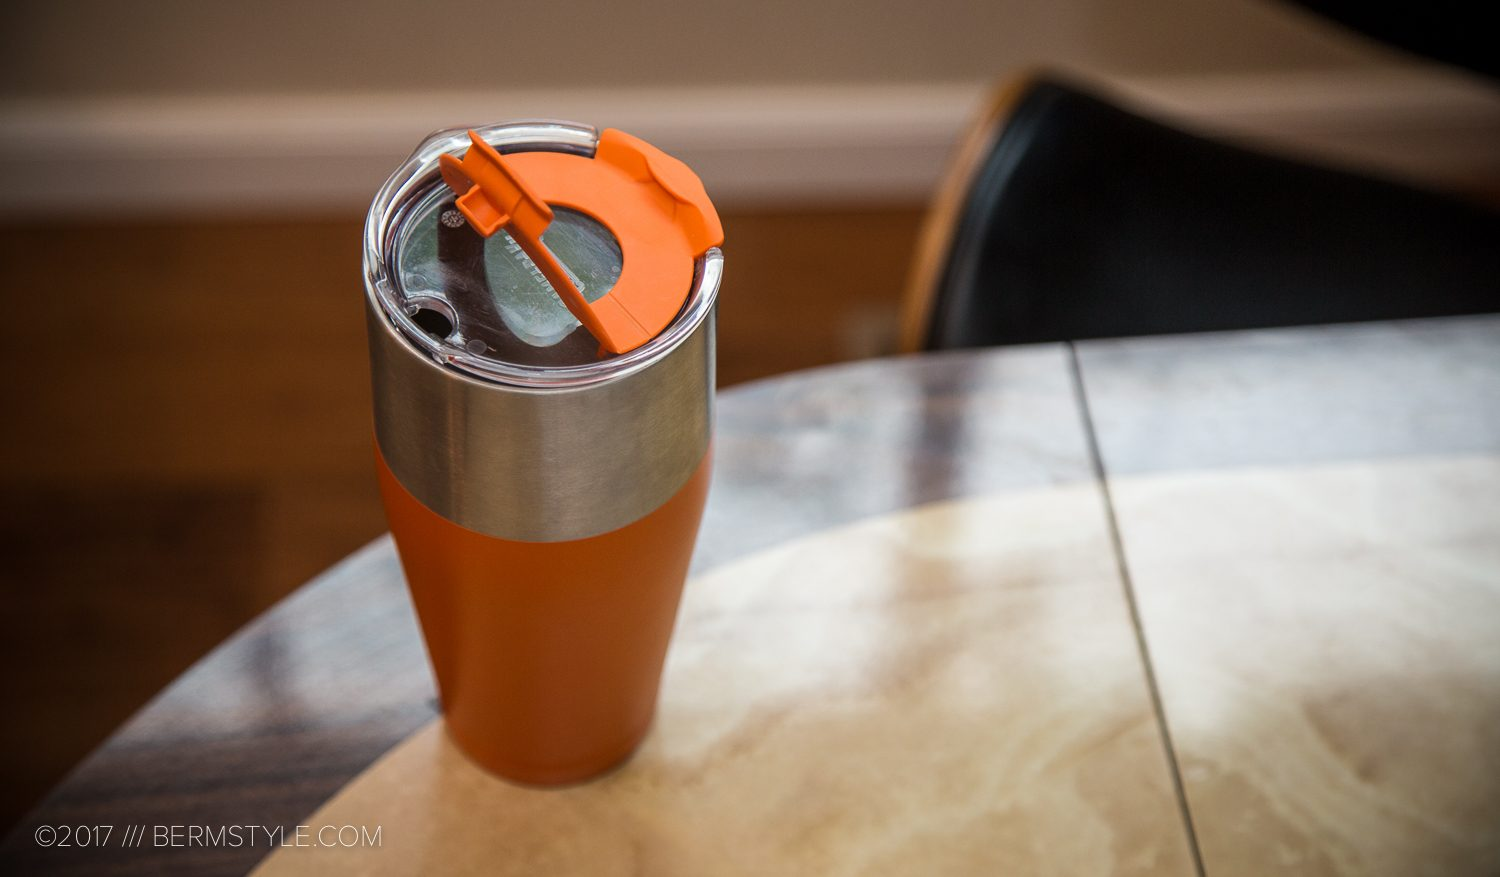 Camelbak Kickbak Insulated mug